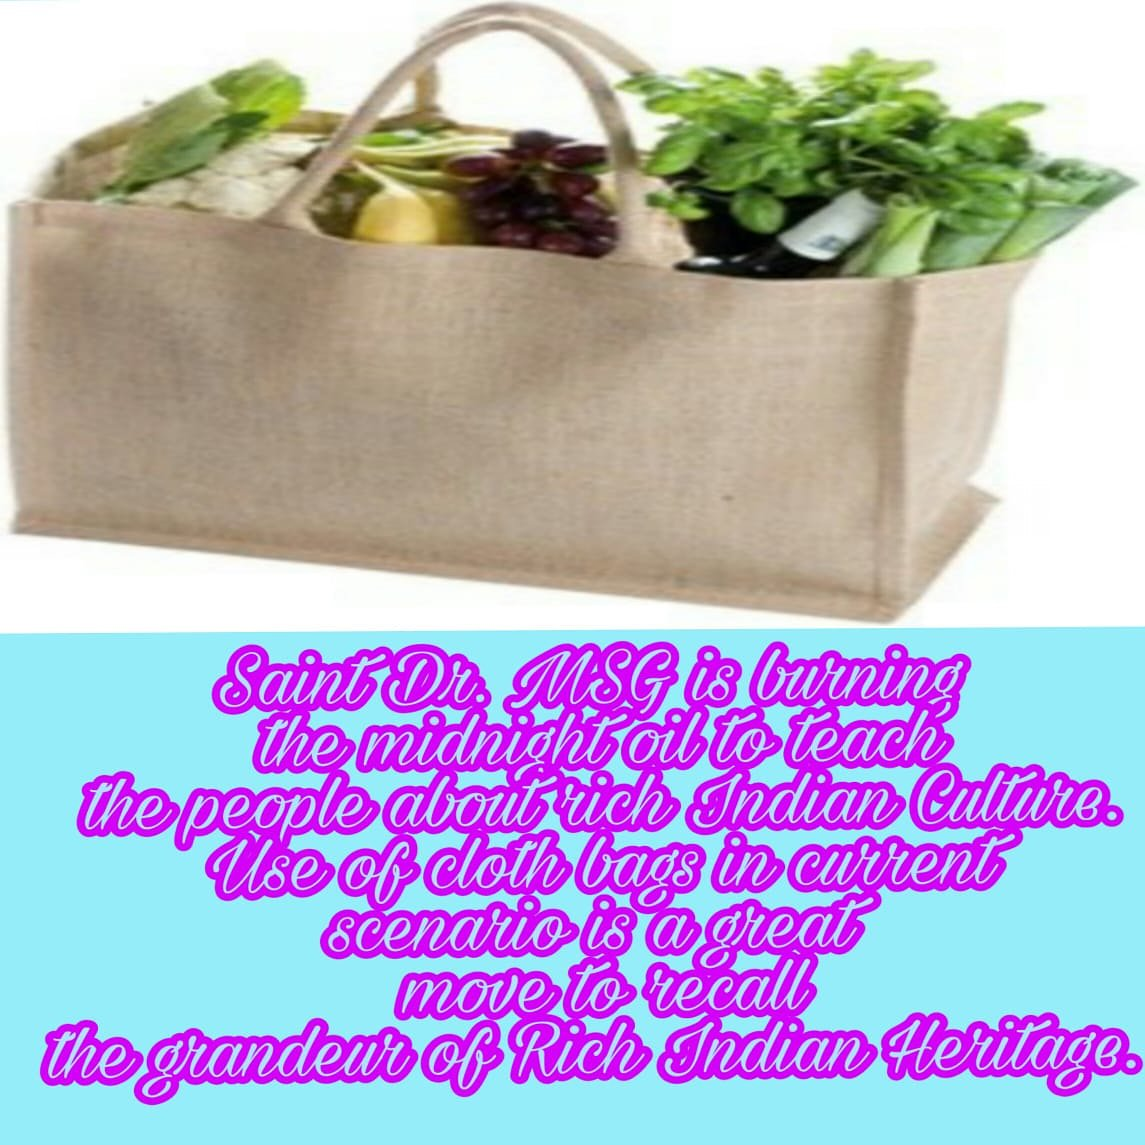 #Thisbagsavestheearth Latest News Trends Updates Images - Ashok38605478